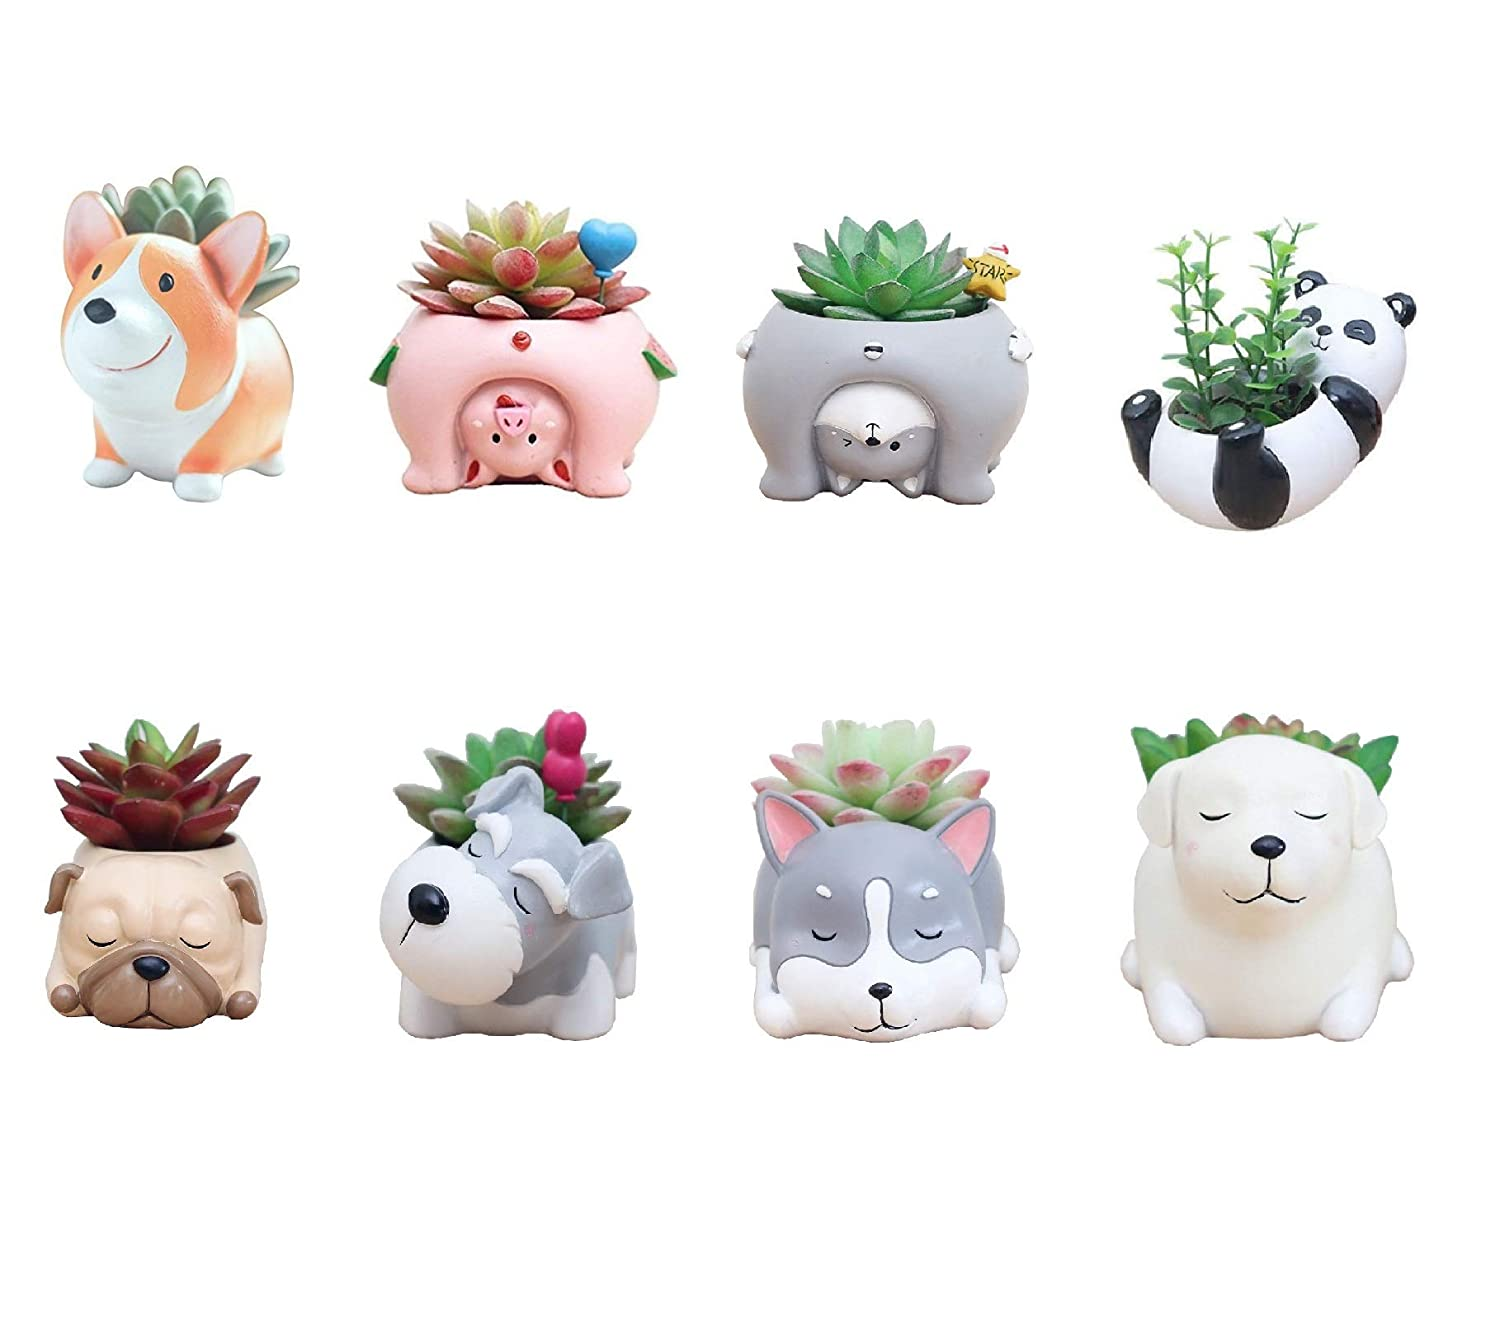 Youfui Animals Succulent Planter Bonsail Holder Cactus Plant Pot Set Home Decoration Vase Flower Pot